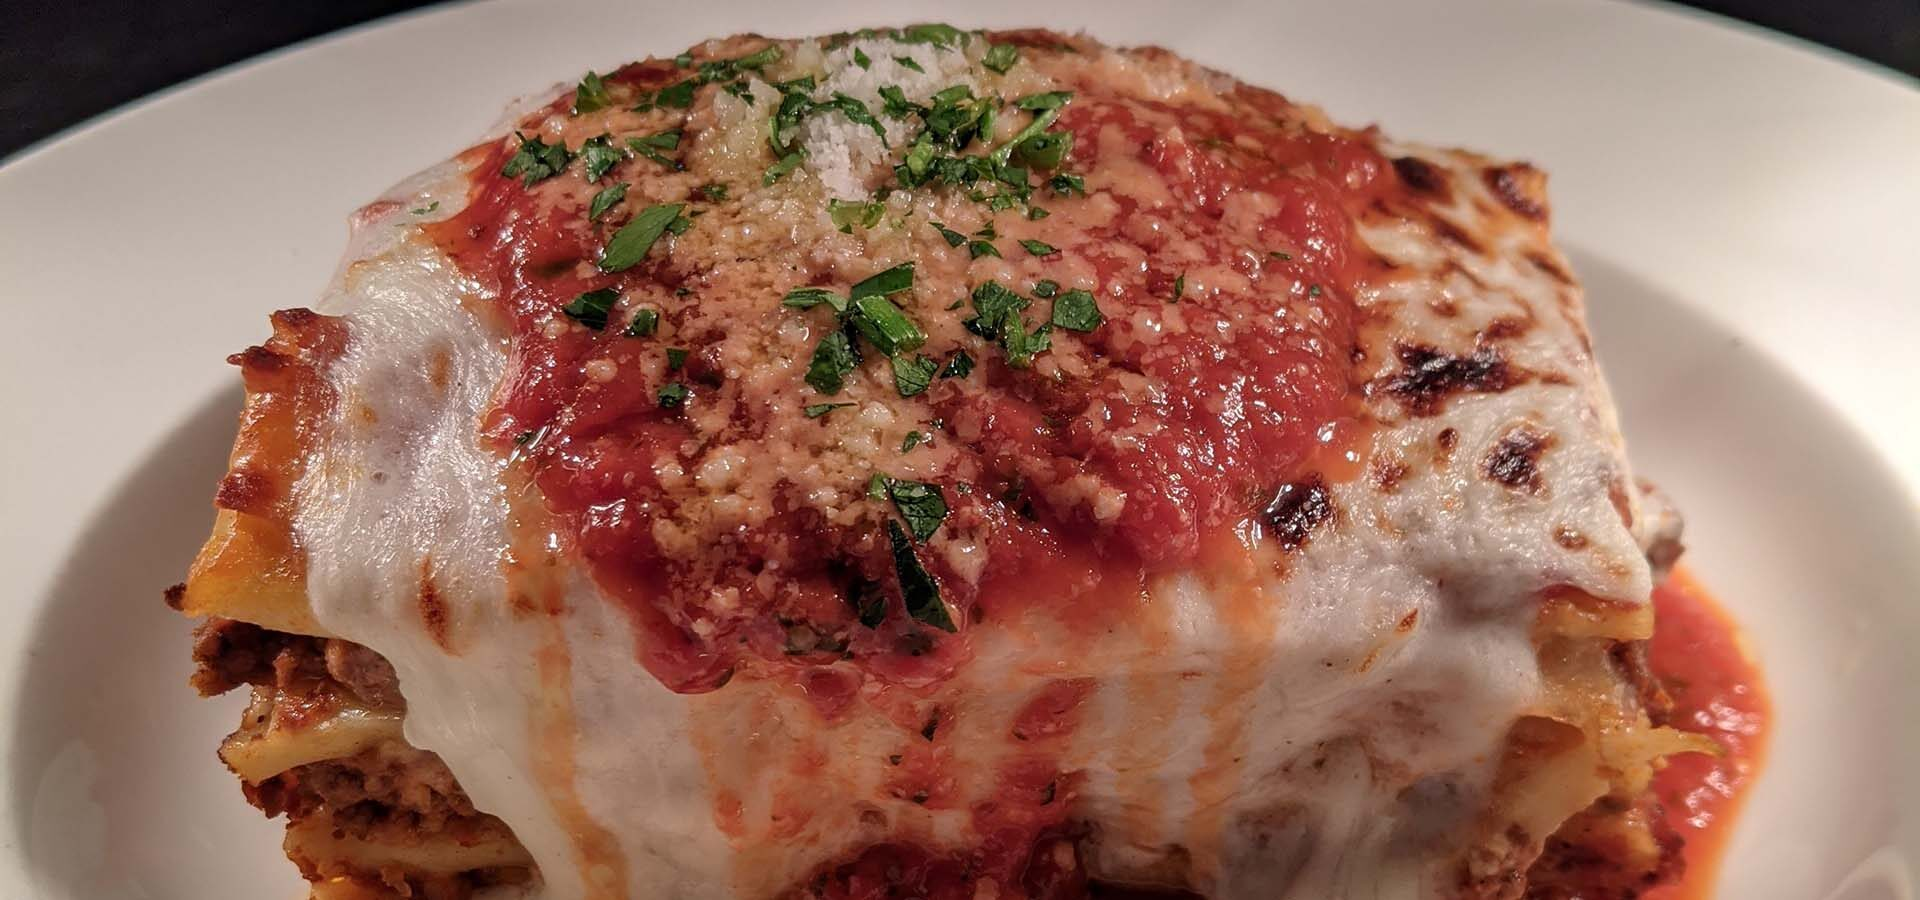 Plate of meat and cheese lasagna.